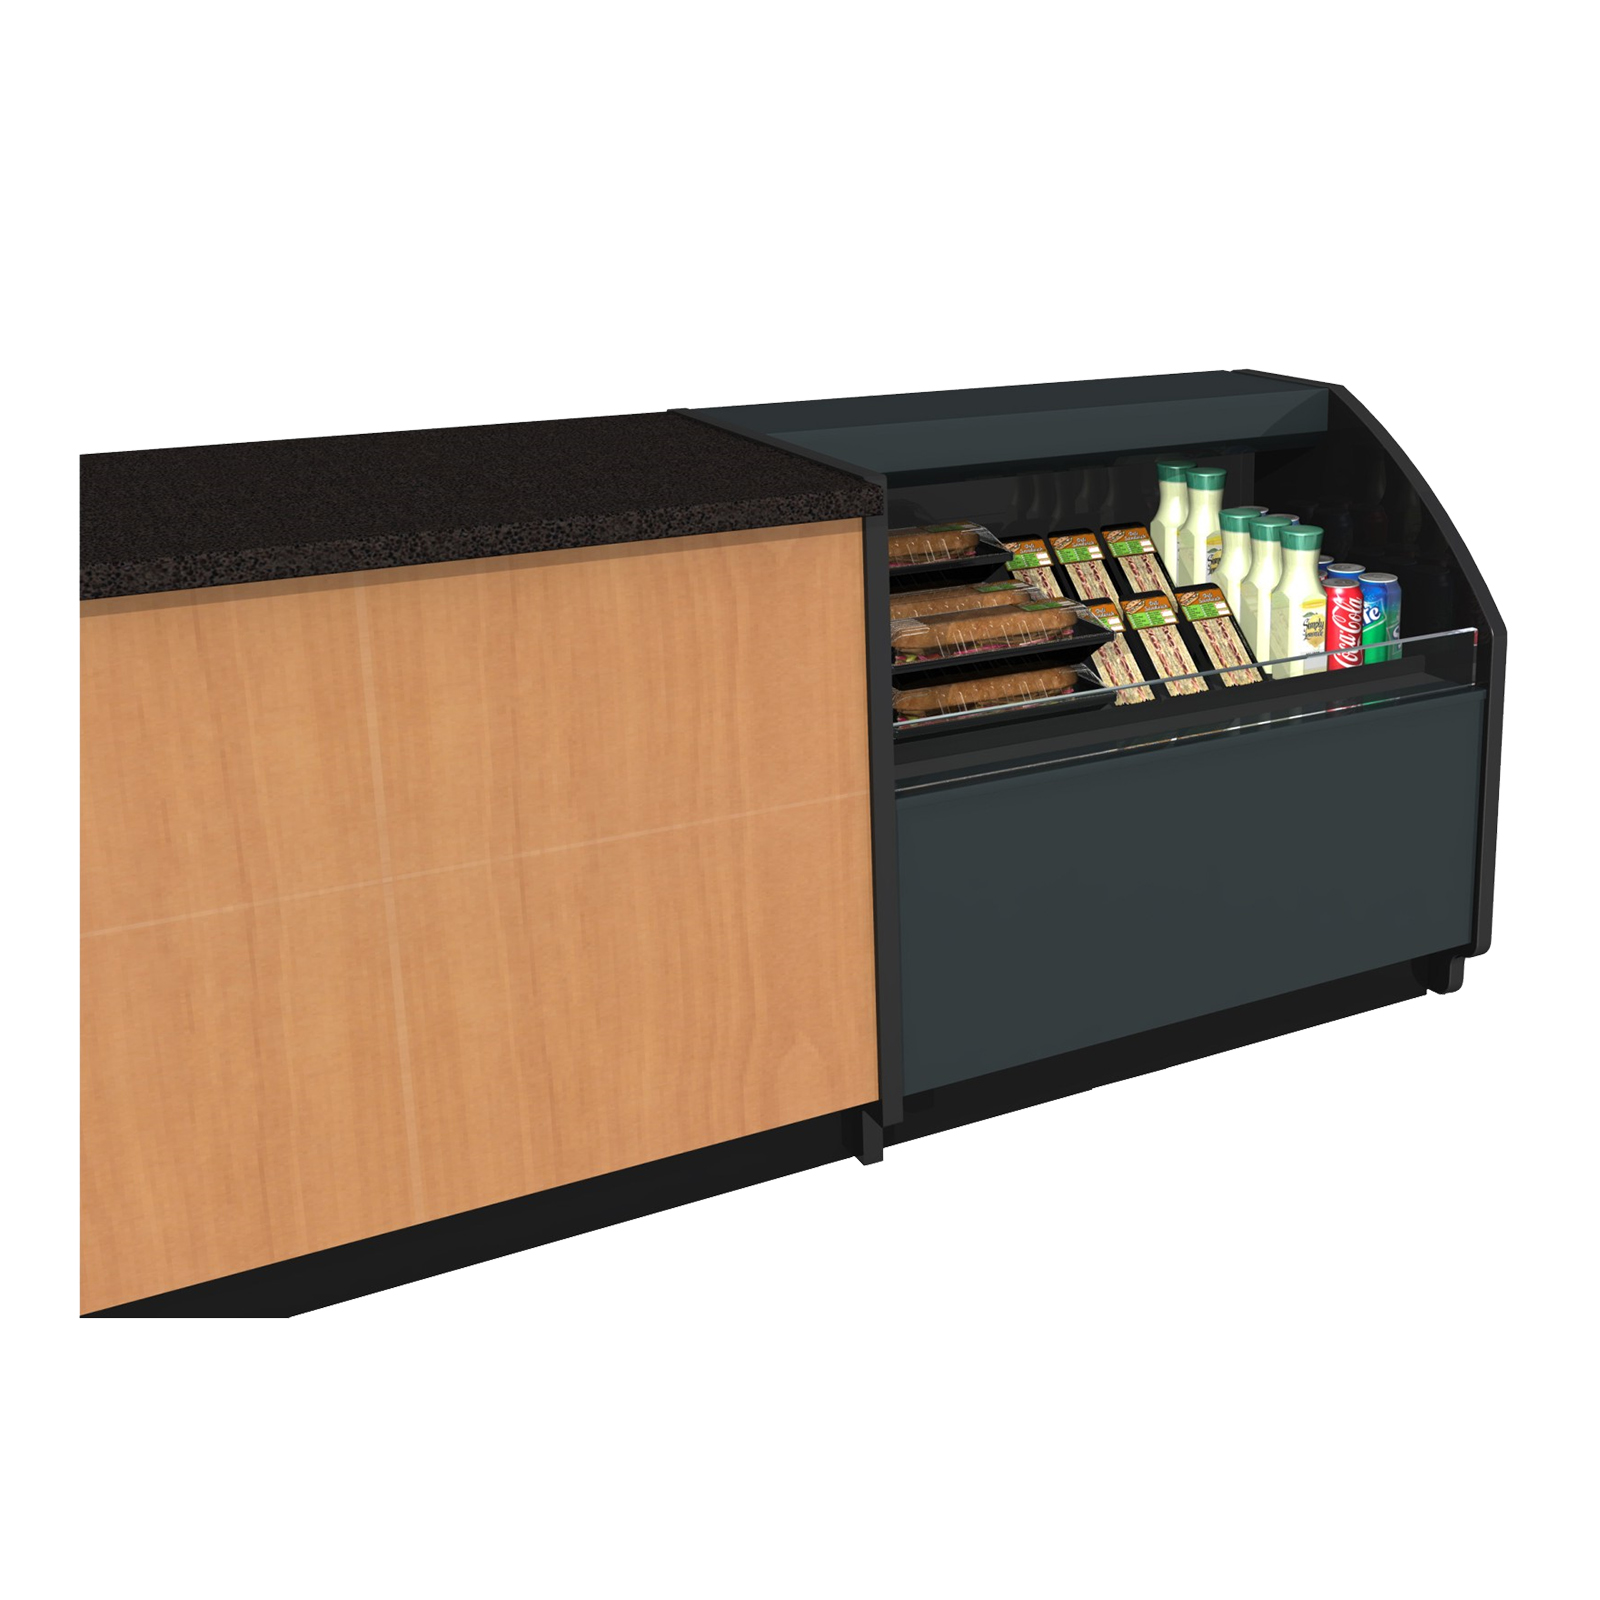 Structural Concepts CO3324R-FS merchandiser, open refrigerated display